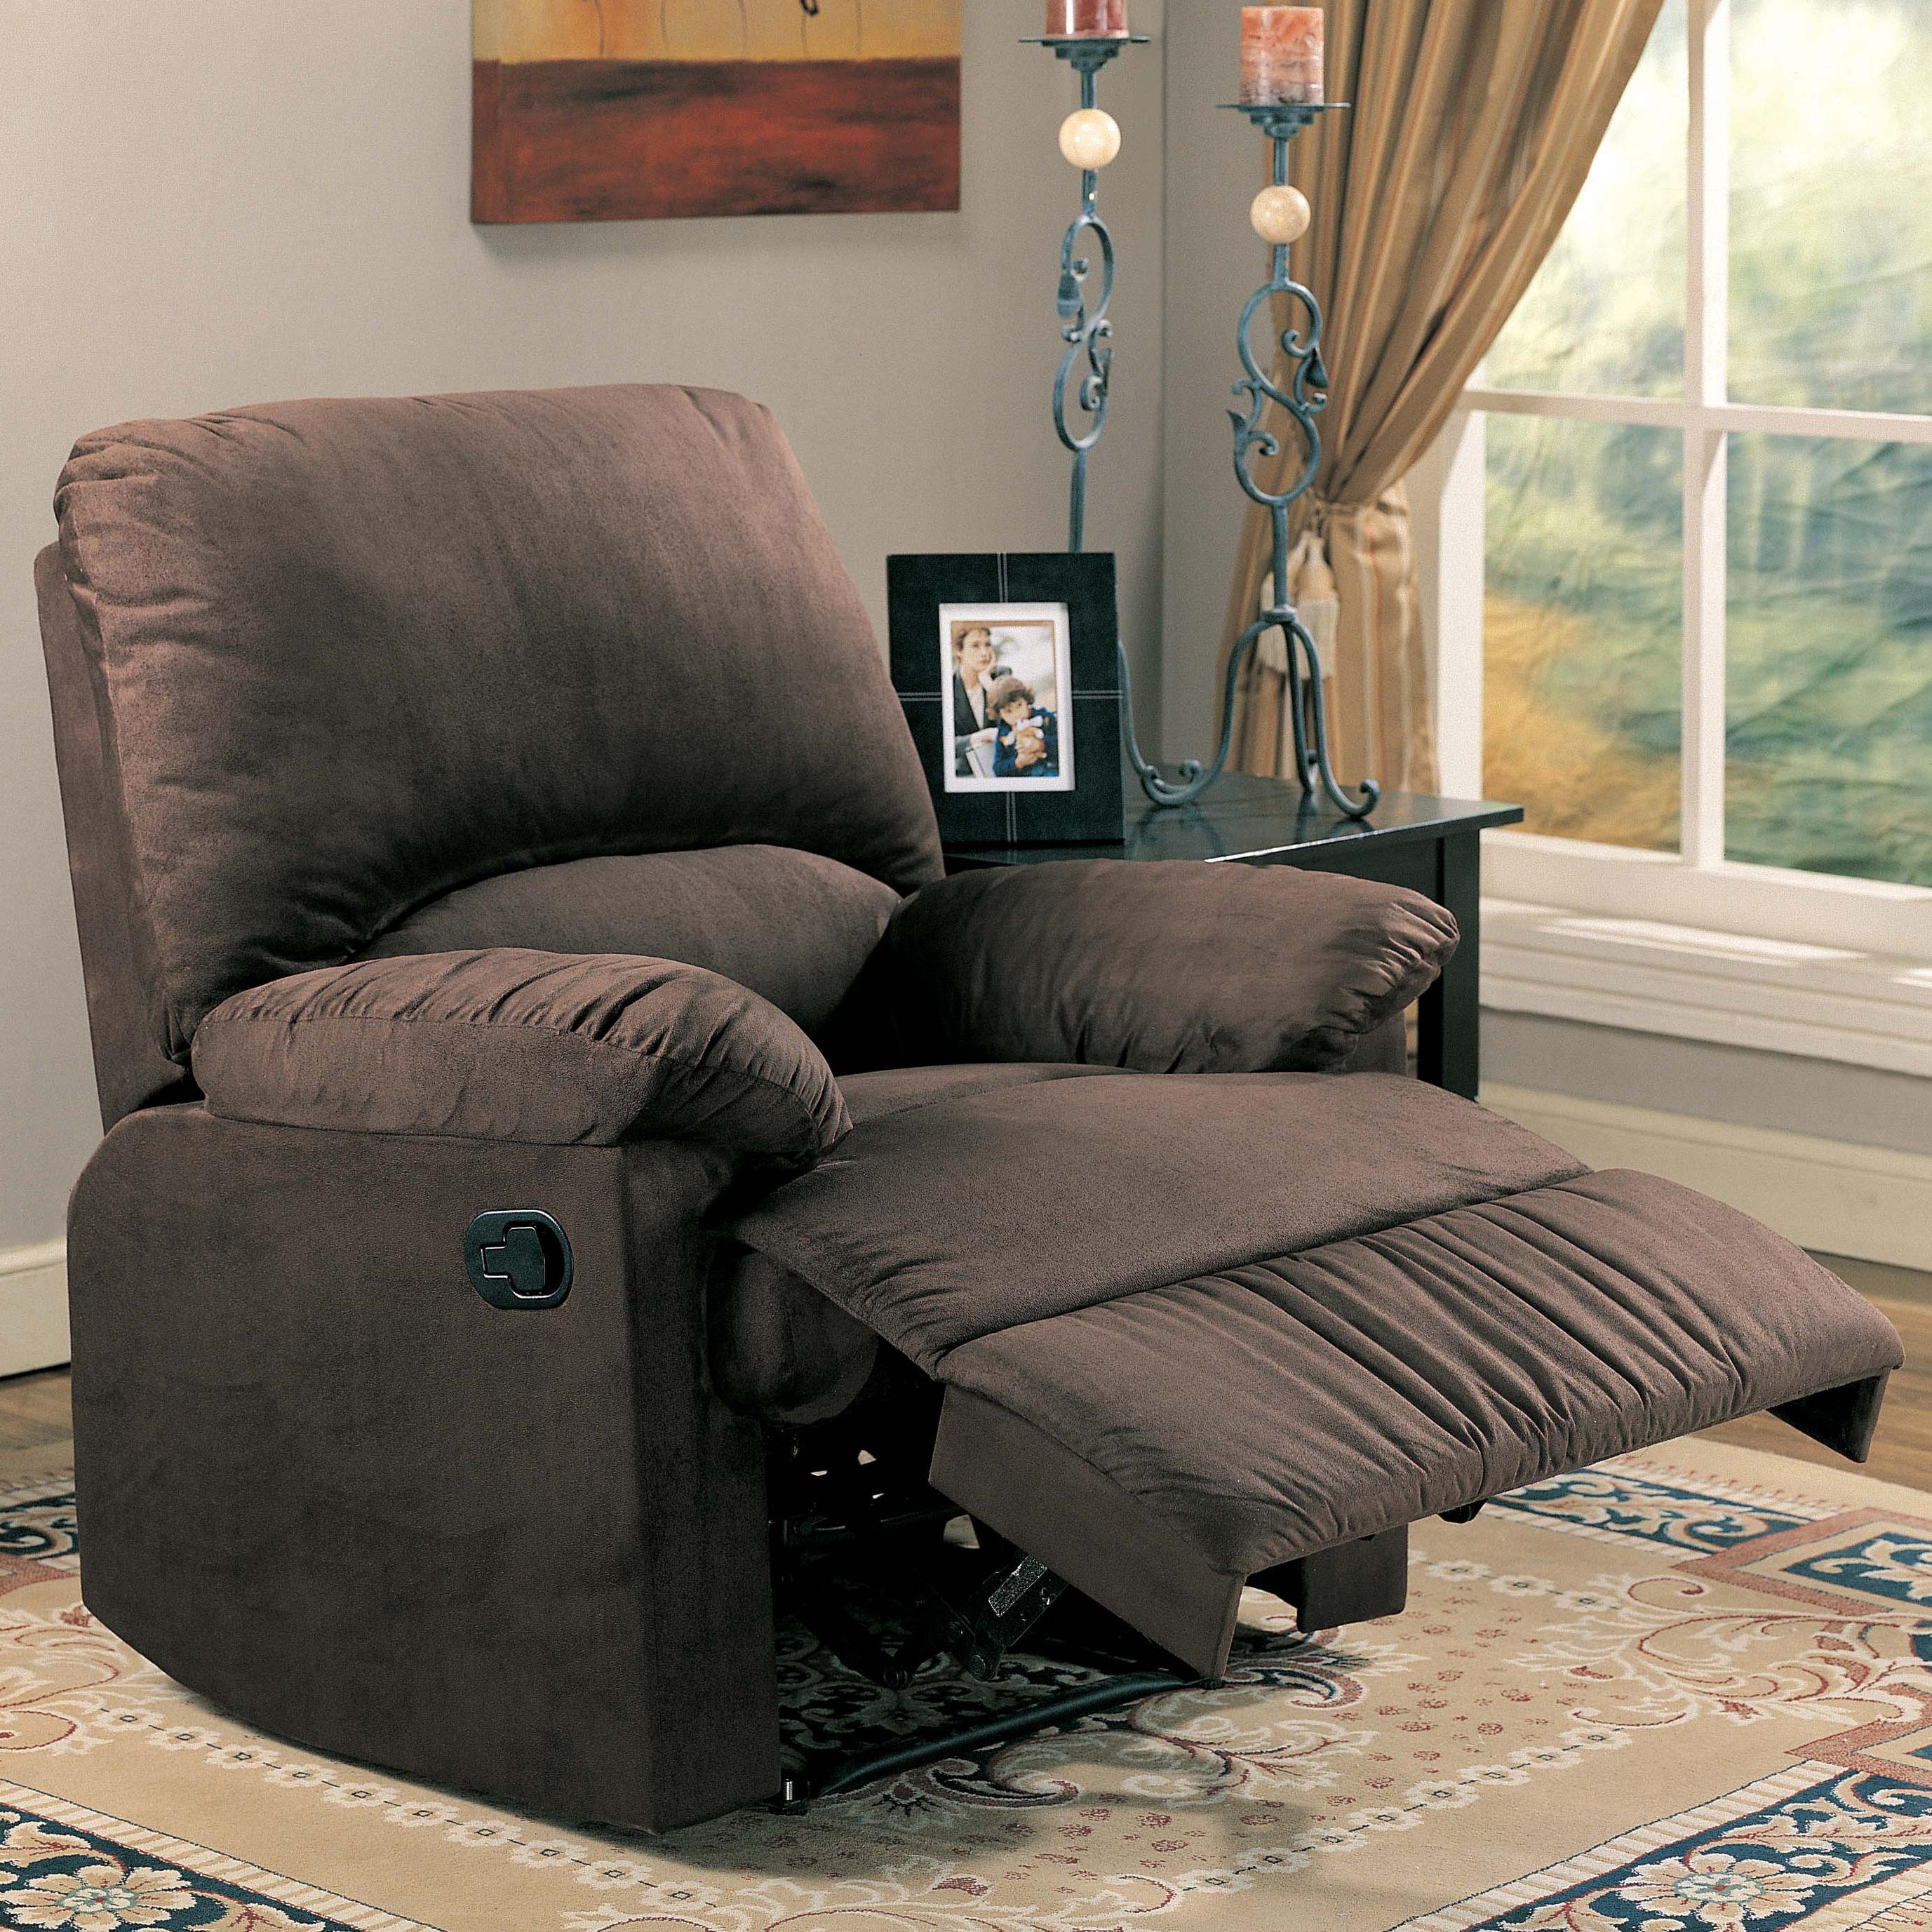 Recliners Recliner by Coaster at Value City Furniture